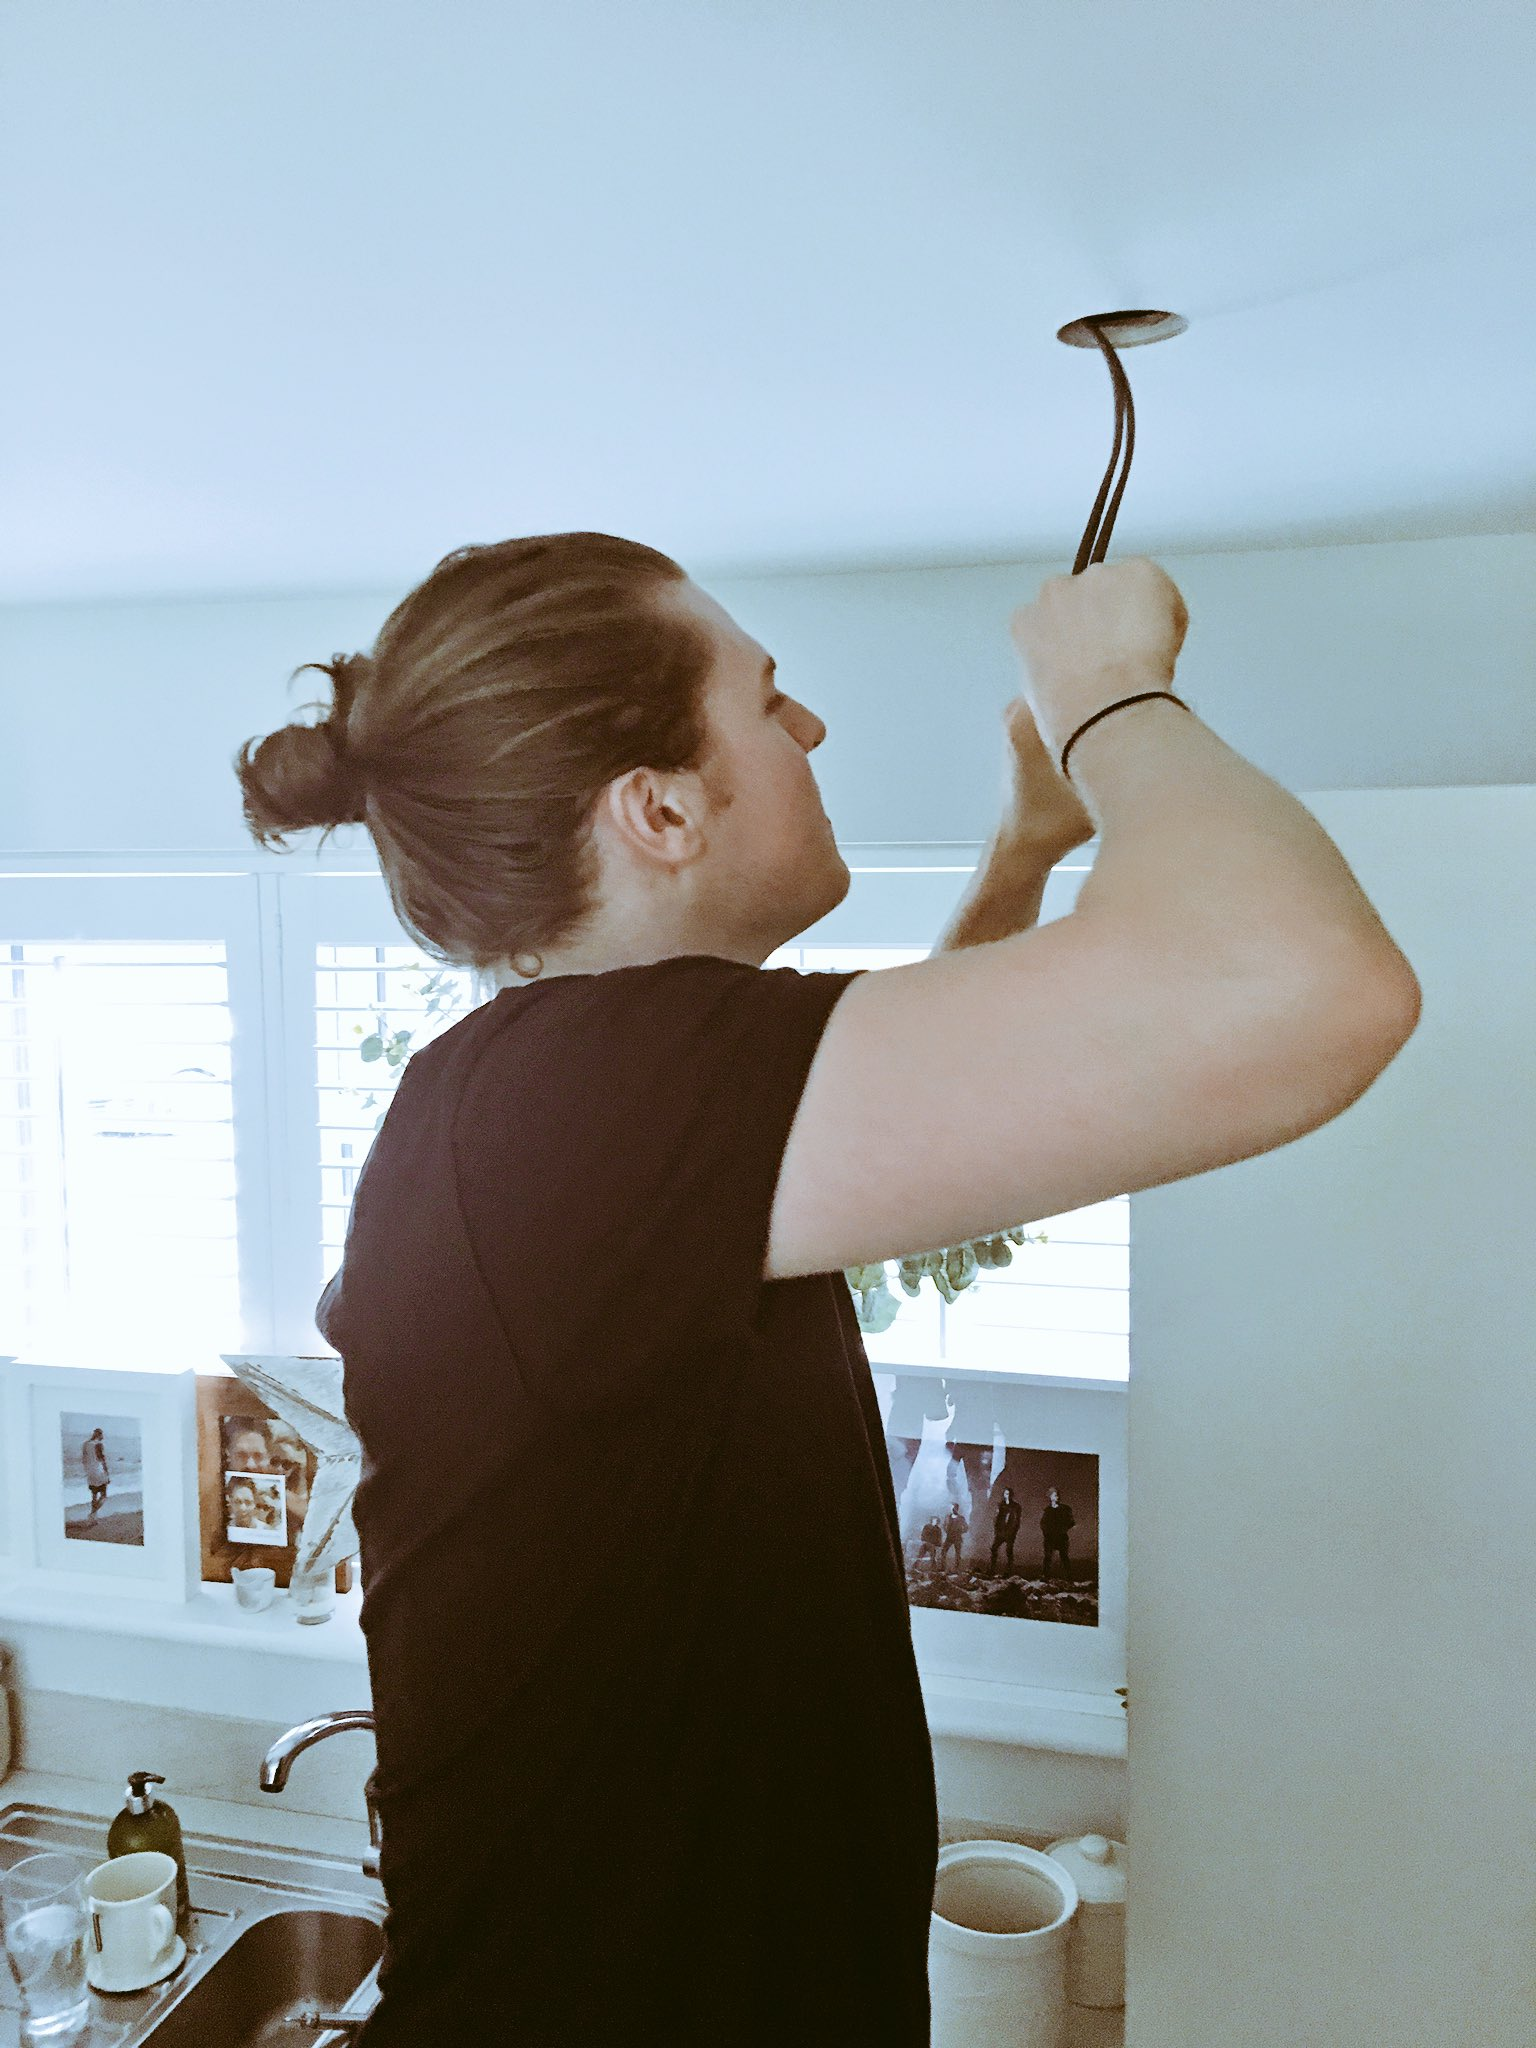 Called the spark to fix my kitchen light @LawsonJoel https://t.co/Q90d02j137